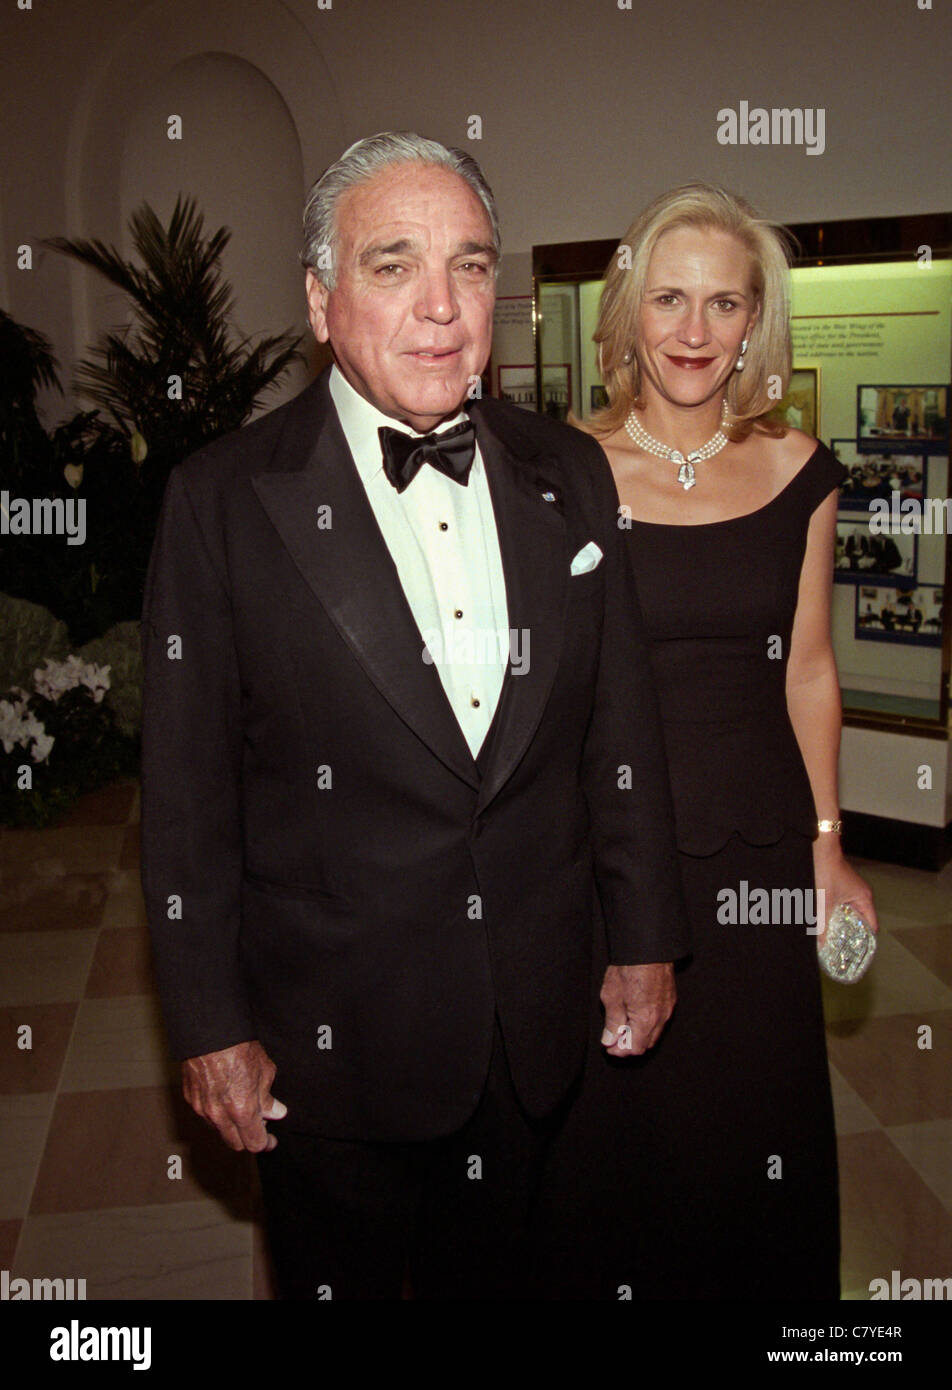 Alfonso Fanjul chairman and CEO, Florida Crystals Corp and fiancé Lourdes Gutierrez arrive for a White House - Stock Image